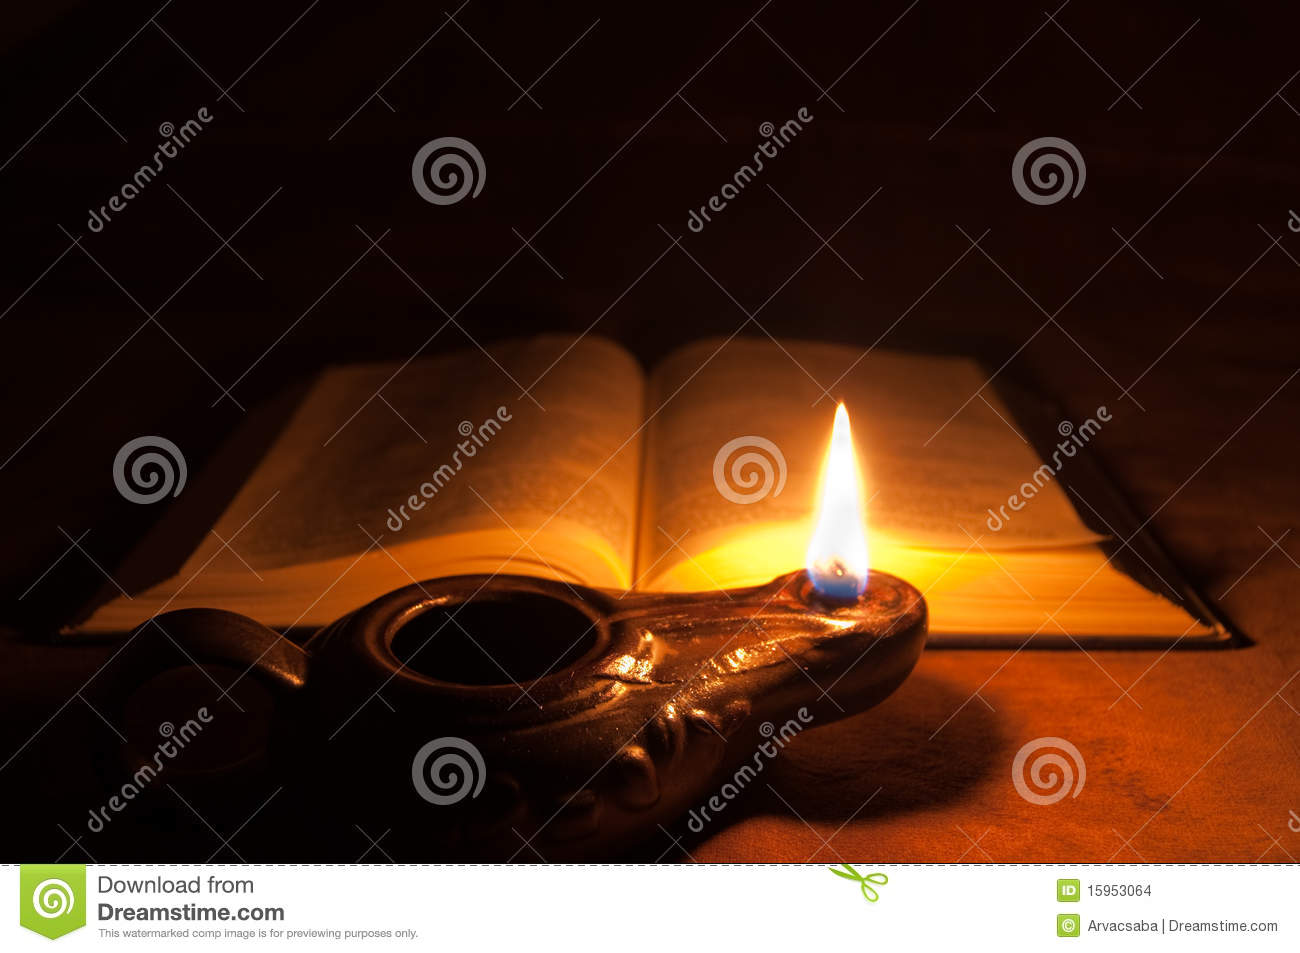 lamp and bible - photo #17